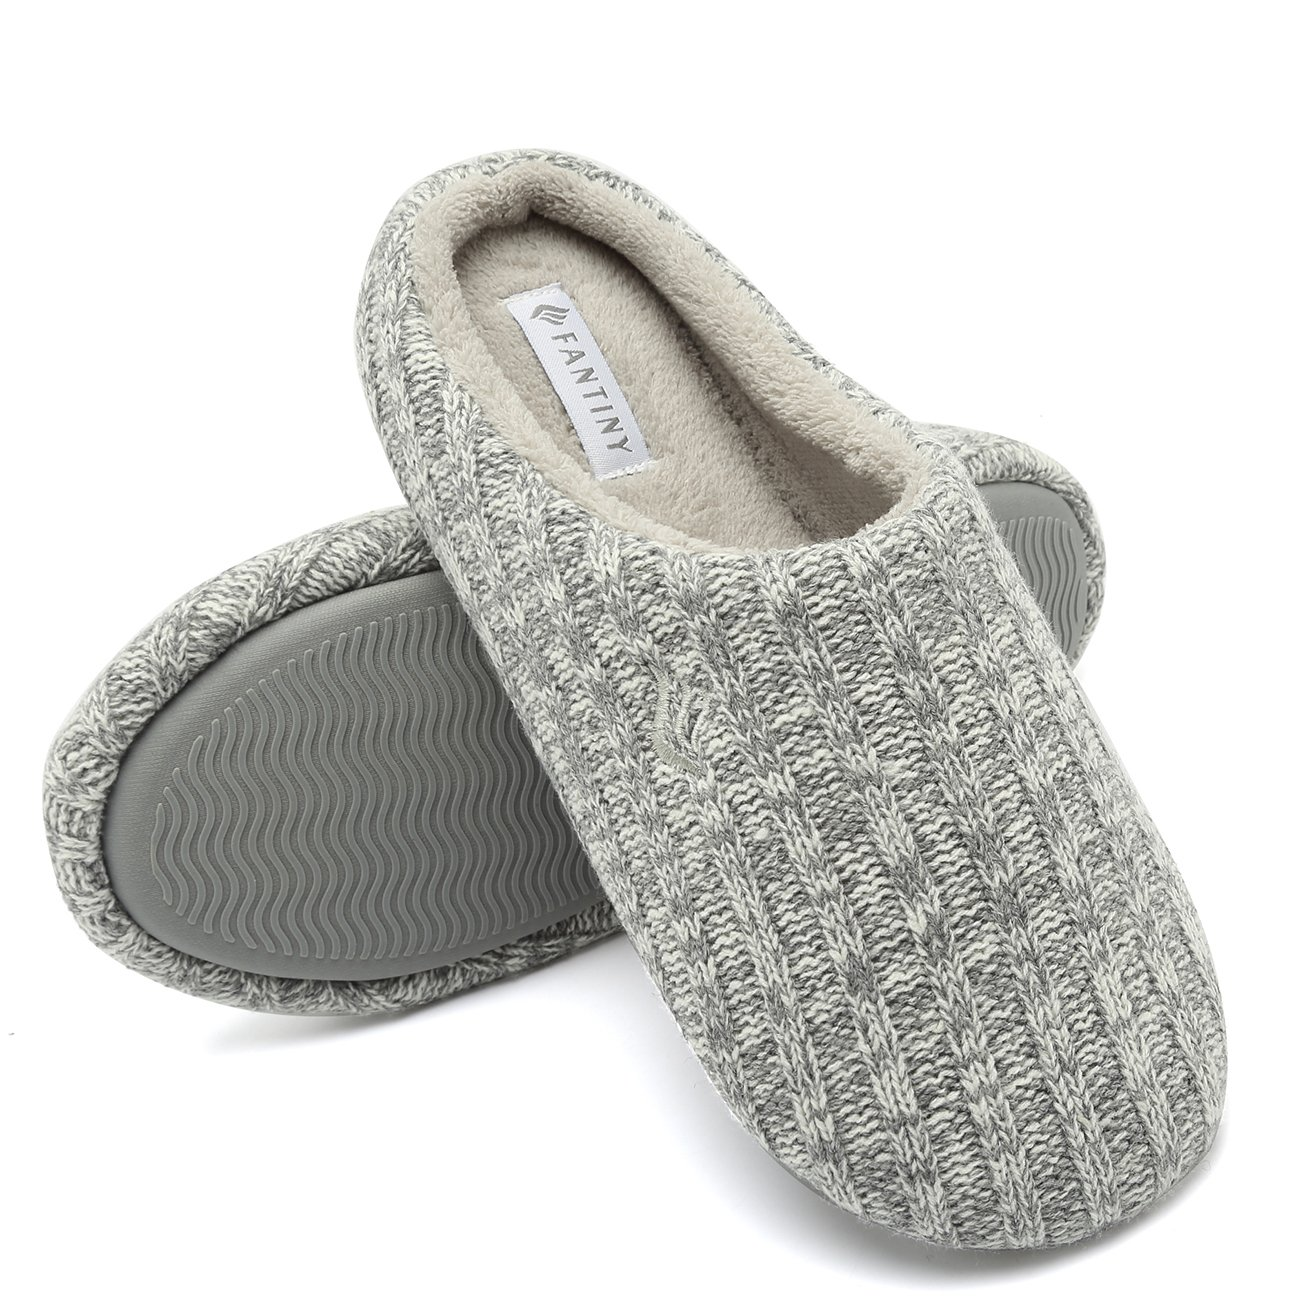 CIOR Fantiny Women's House Slippers Indoor Memory Foam Cashmere Cotton Knitted Autumn Winter Anti-Slip 2nd Upgrated Version-U118WMT029-Light Gray-F-38-39